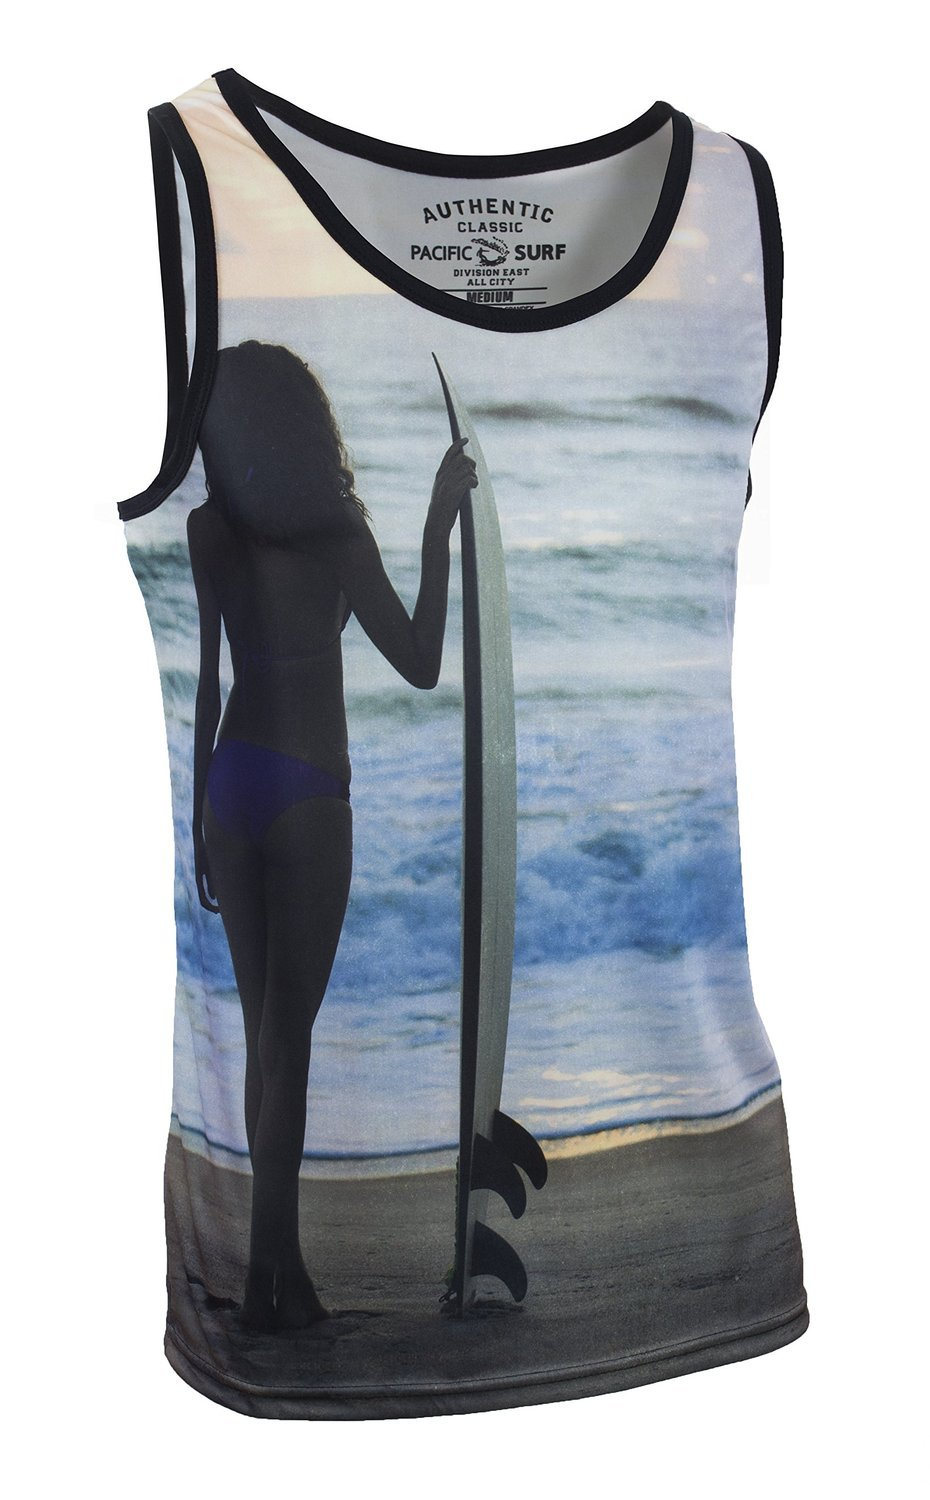 Pacific Surf Men's Tank Slim Fit Muscle Shirt Surf Girl M by Pacific Surf